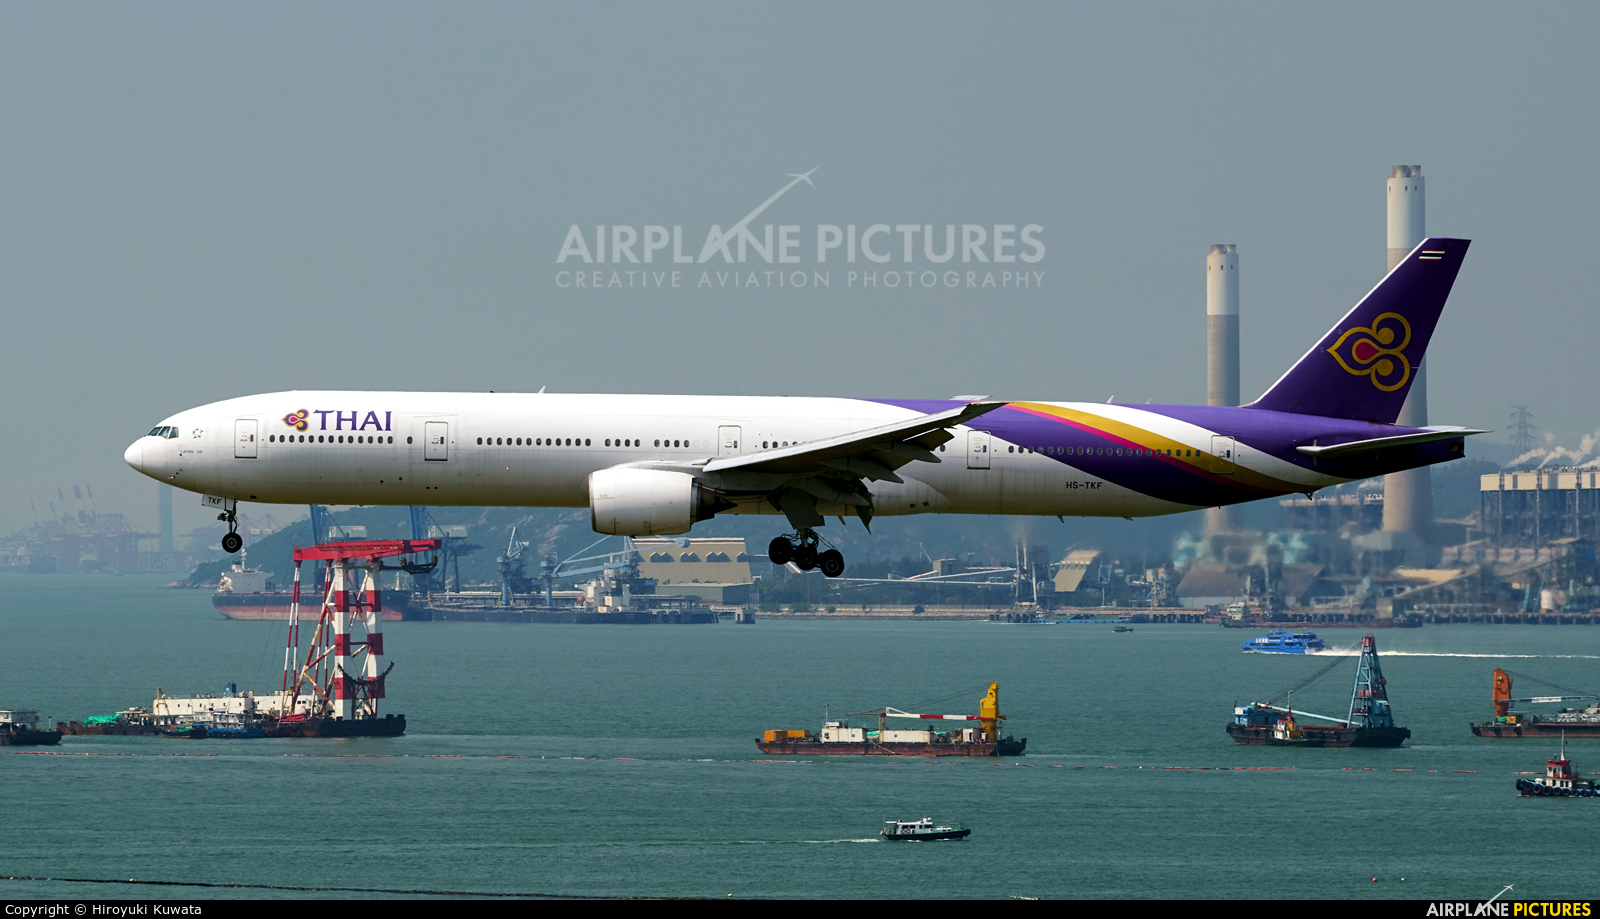 Thai Airways HS-TKF aircraft at HKG - Chek Lap Kok Intl